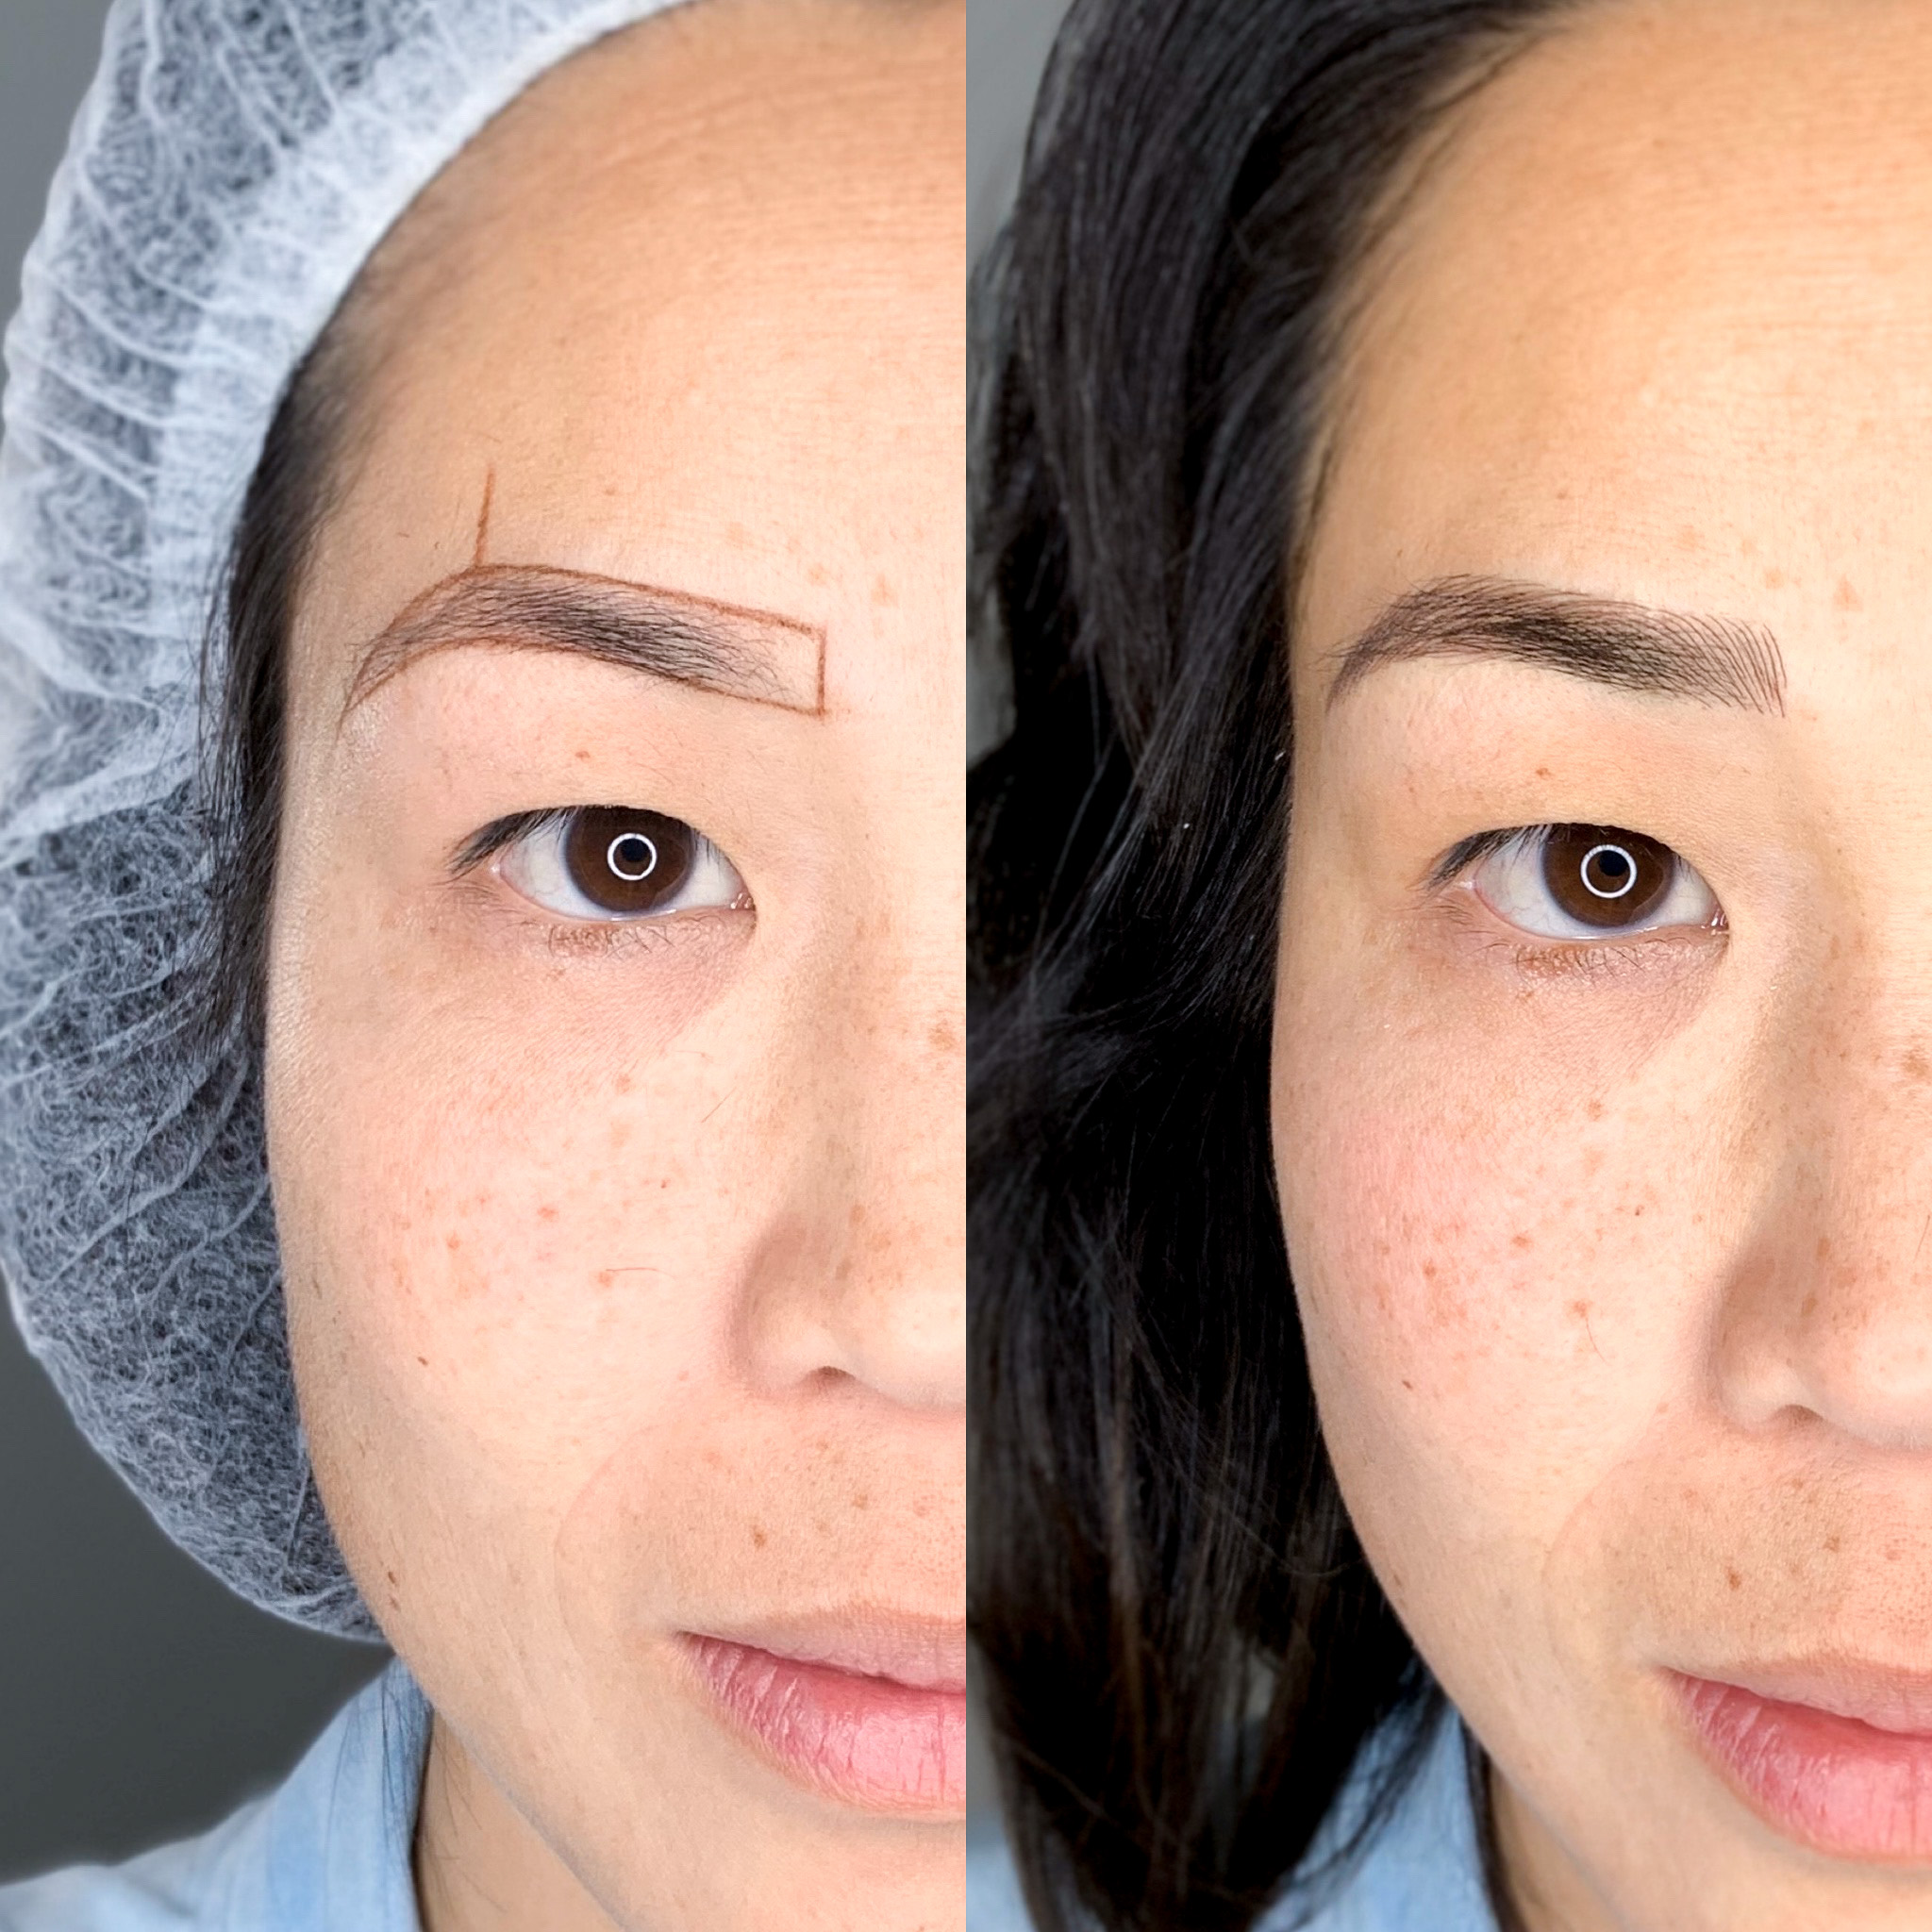 Before and after eyebrow feathering